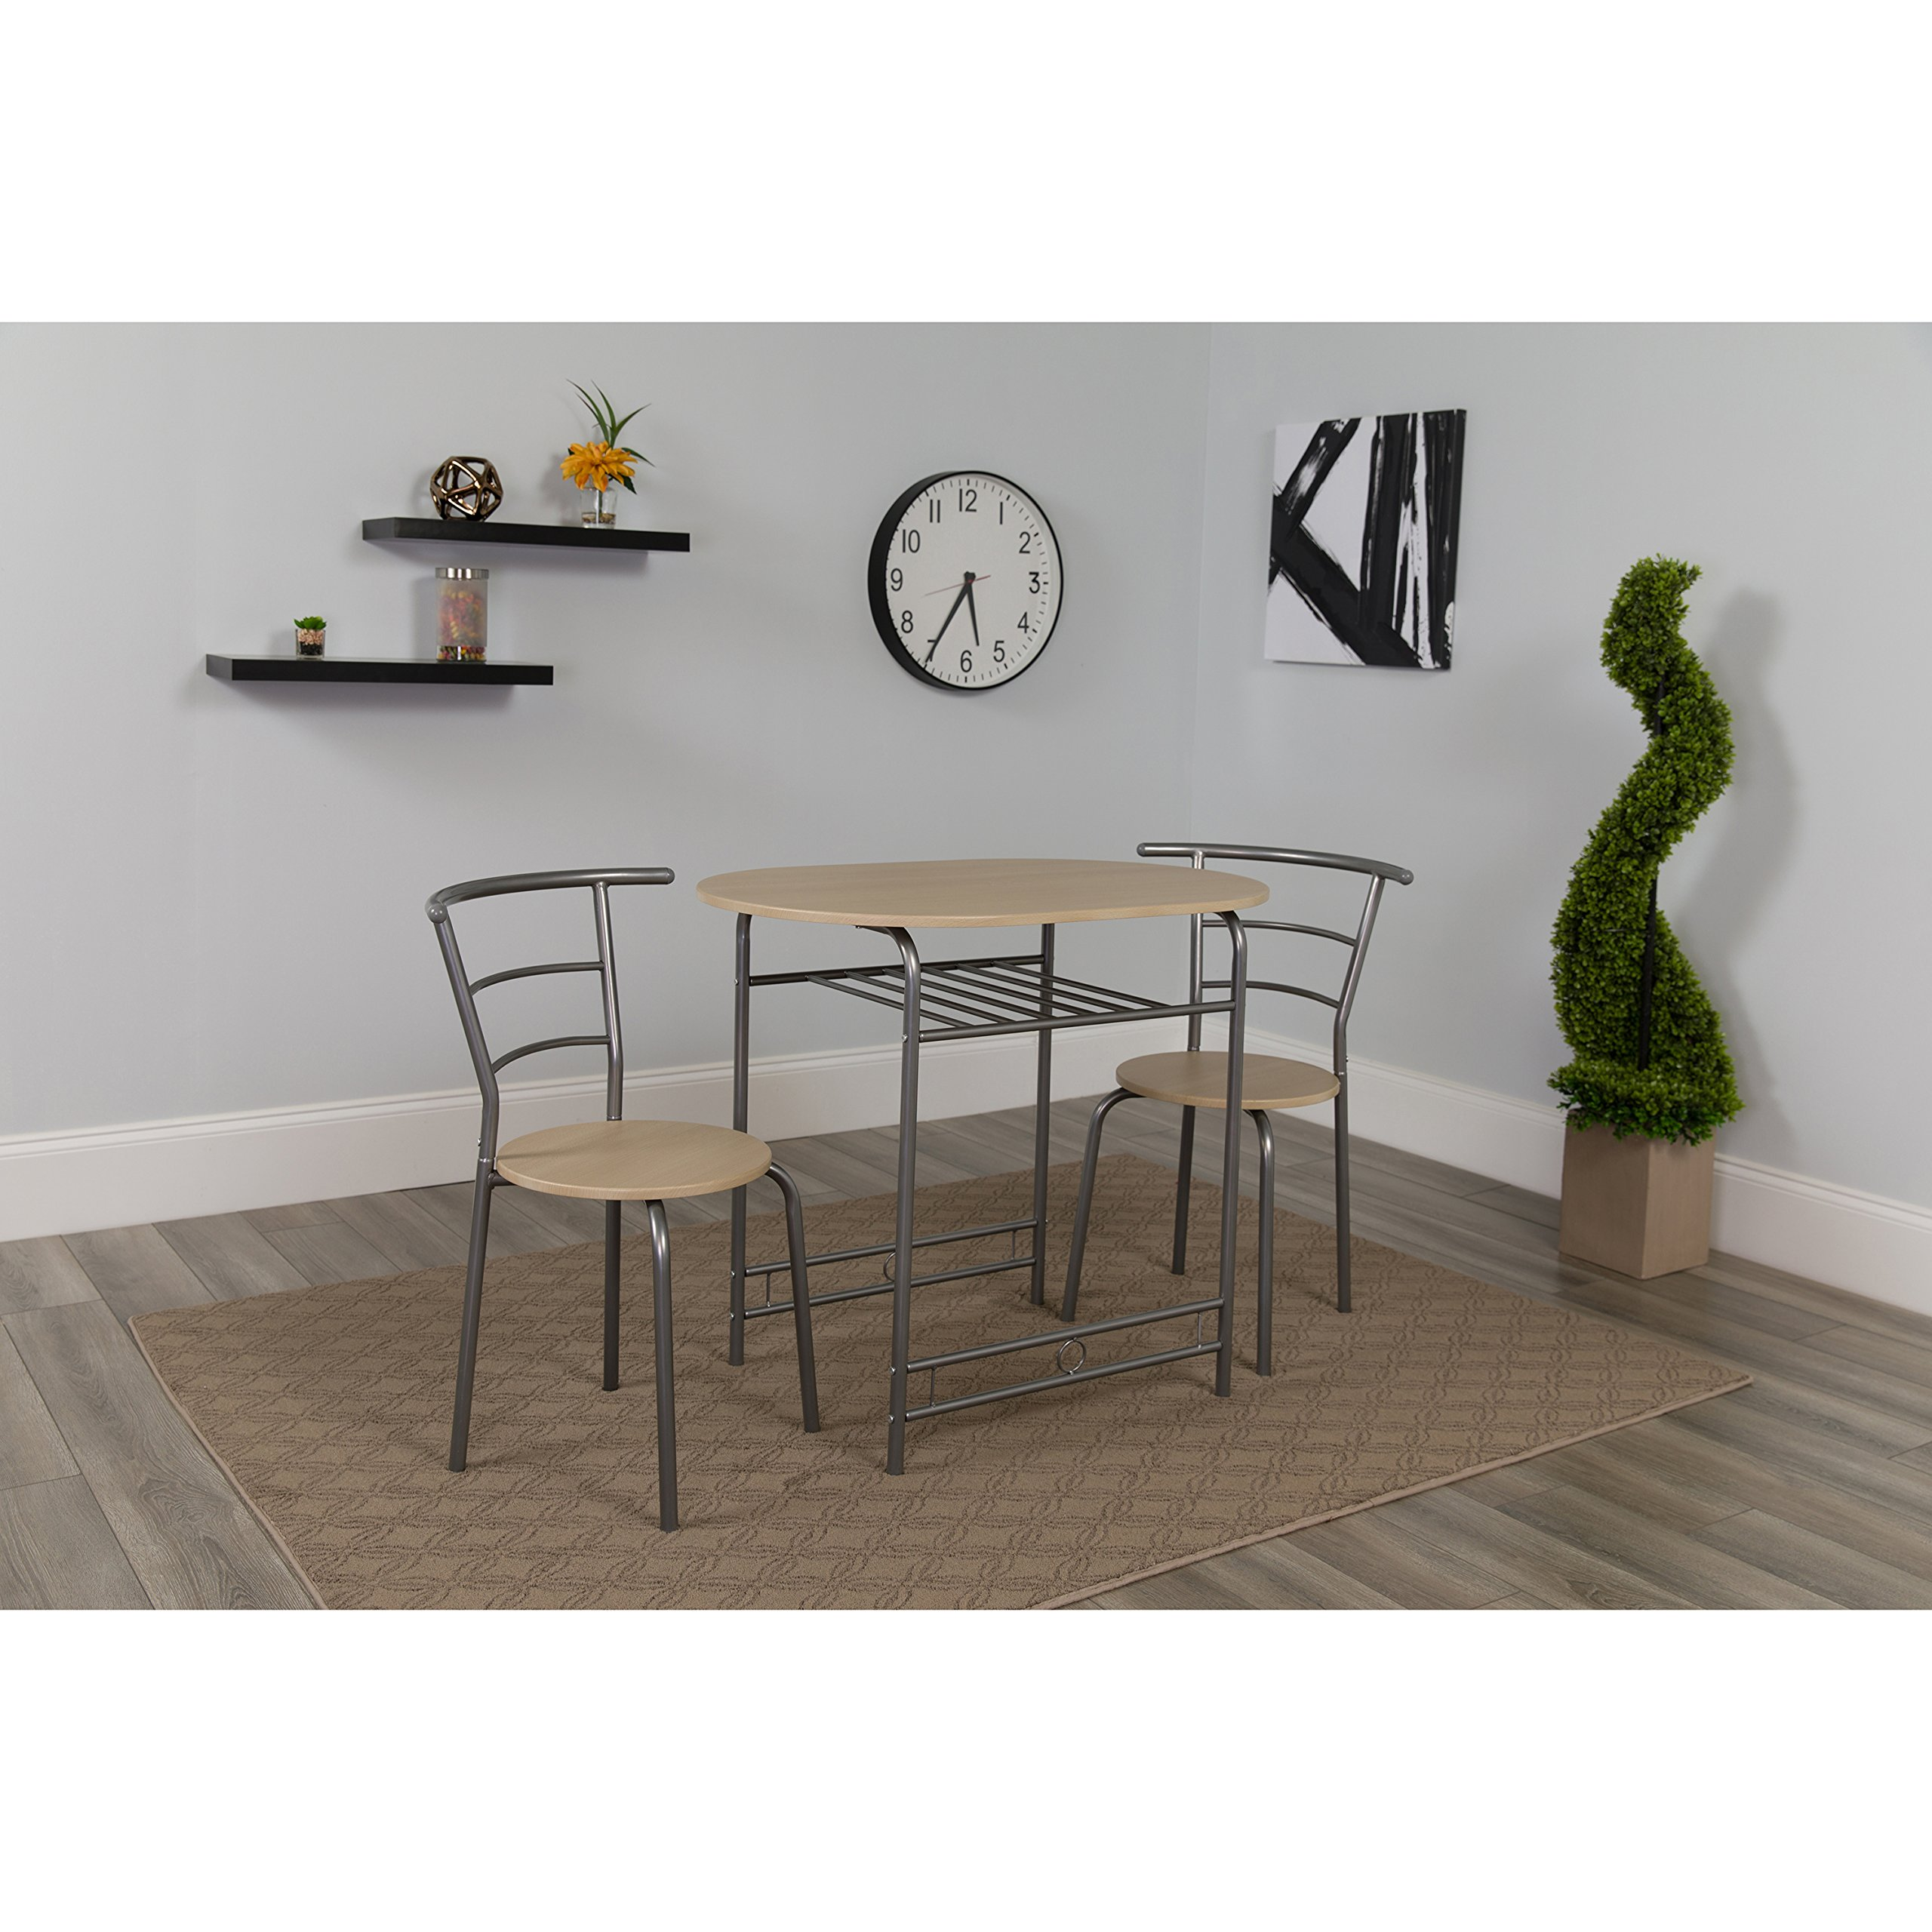 Flash Furniture Soho 3 Piece Space-Saver Natural Finish Bistro Table with Shelf and Chairs